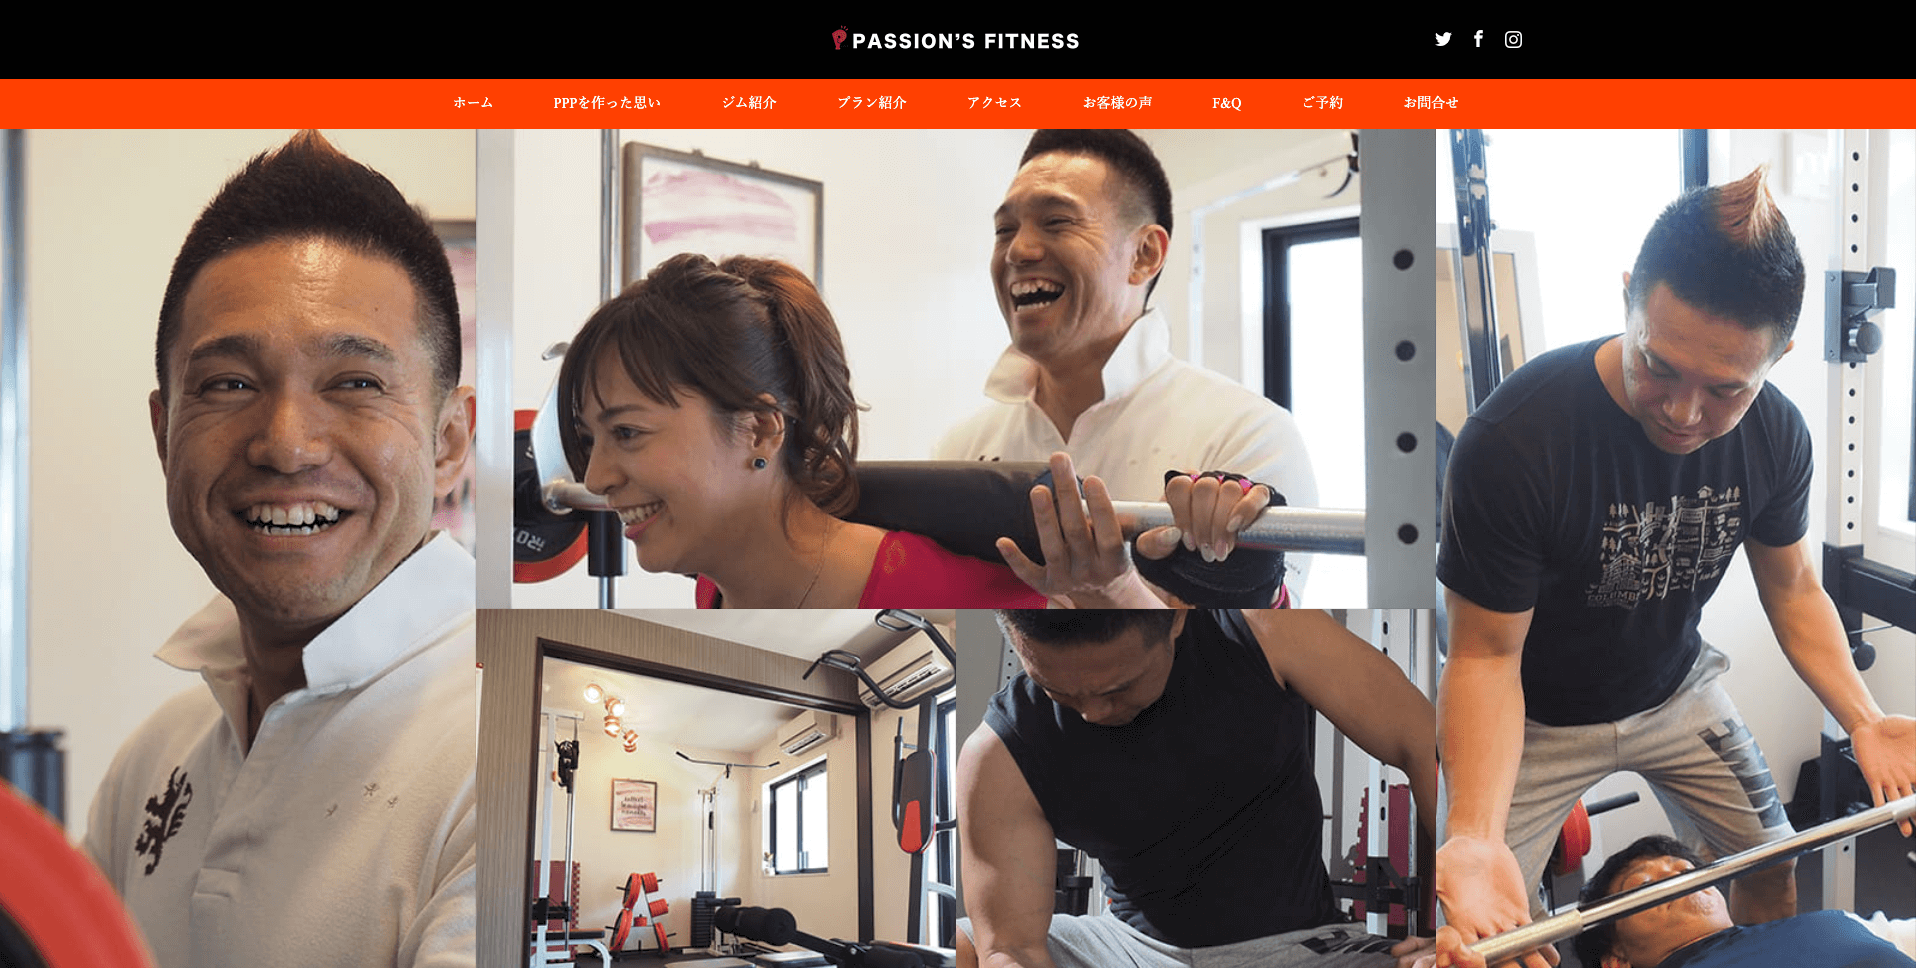 Passion's Fitness【PPP】